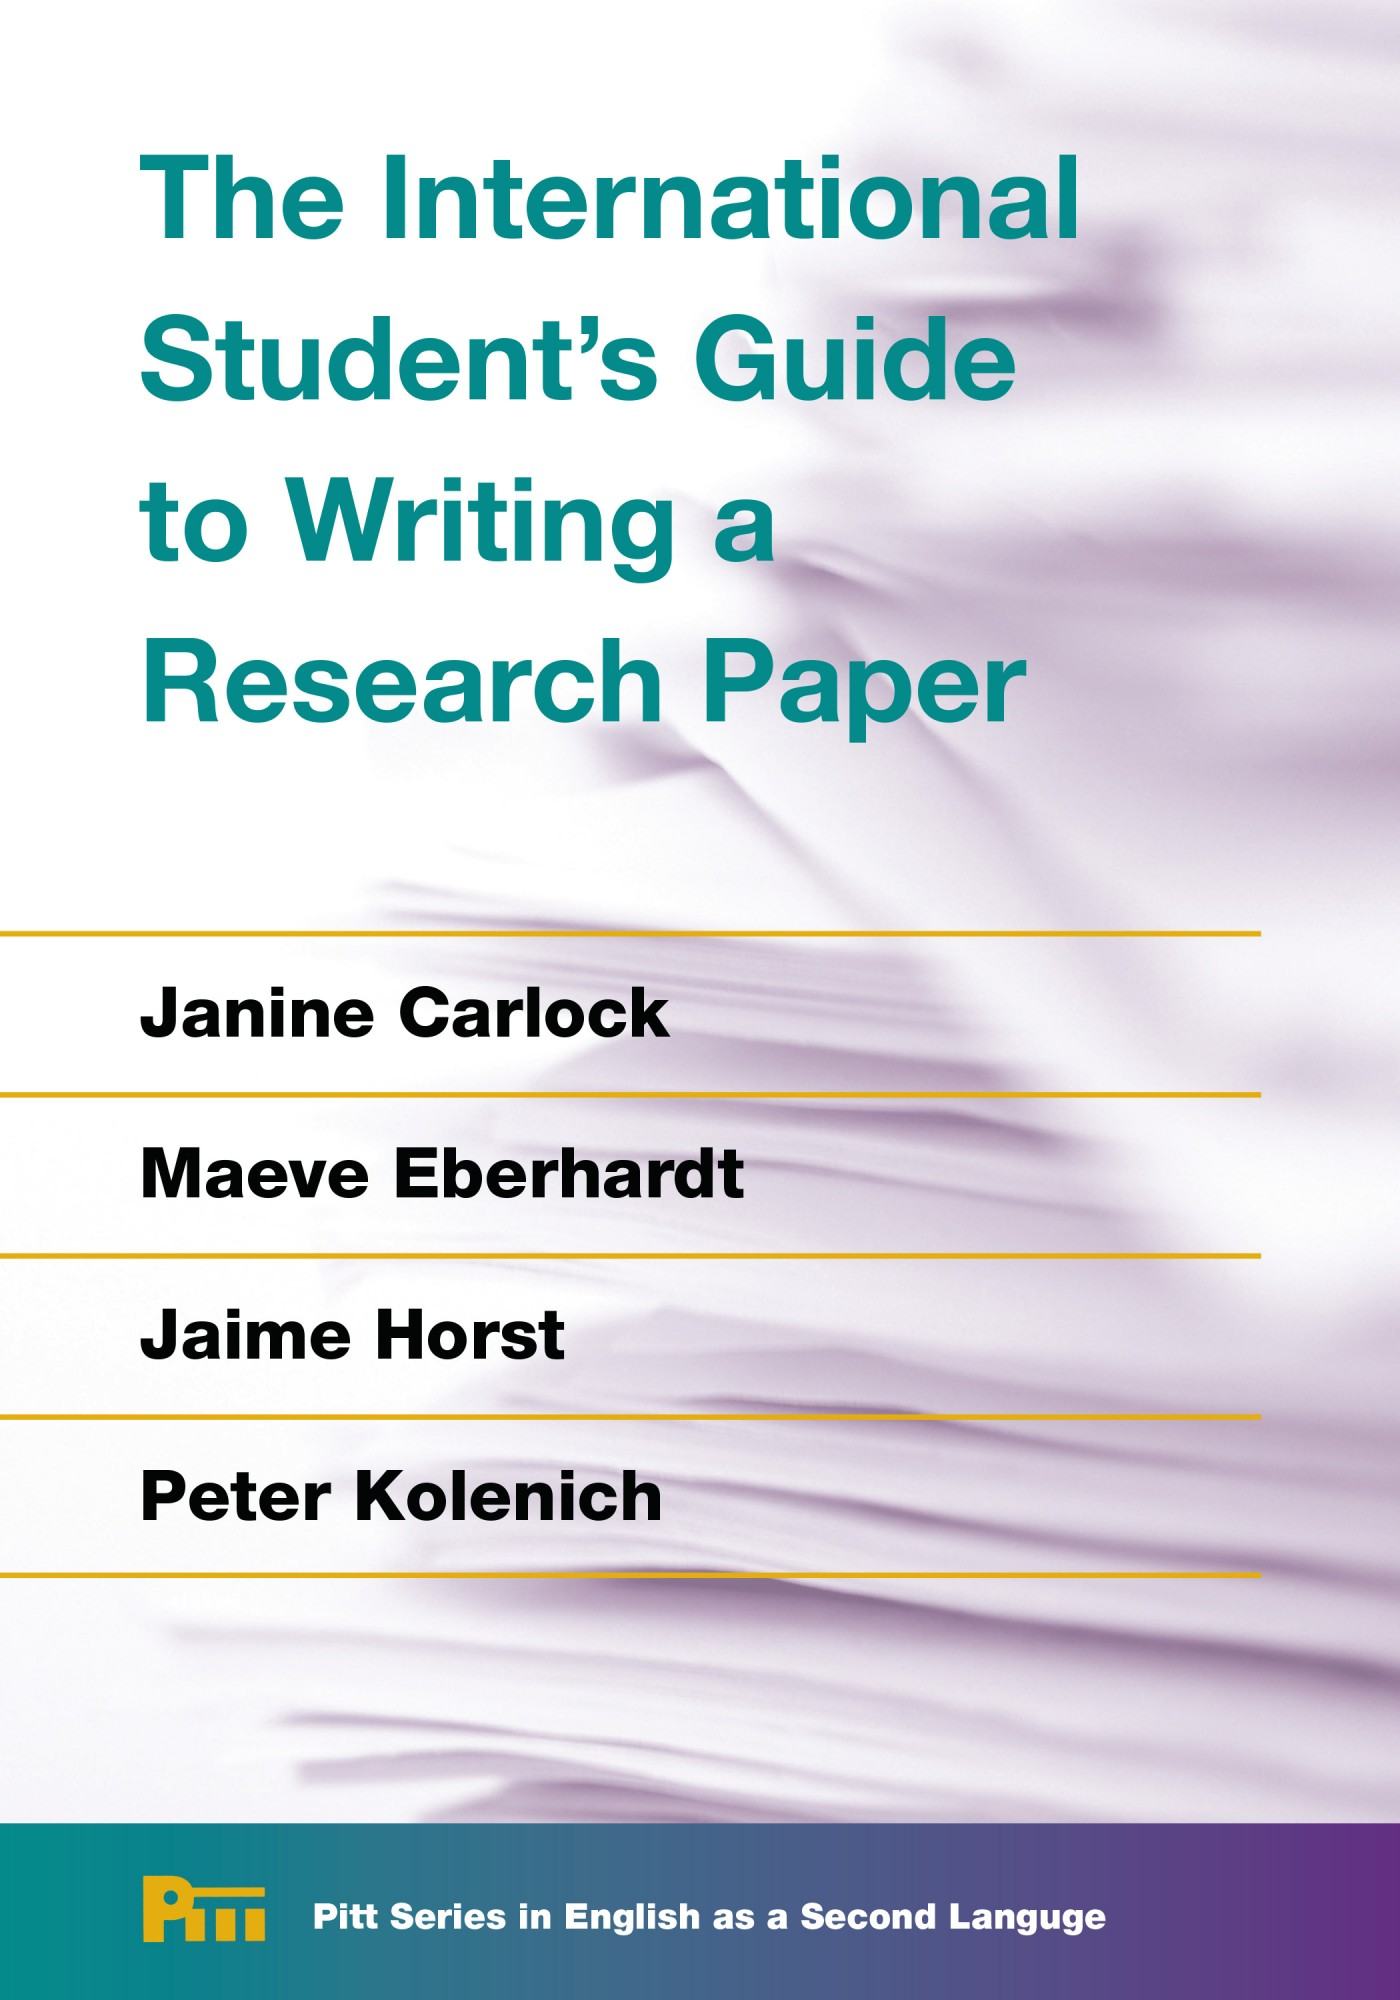 013 Research Paper Striking Writing Papers Lester 16th Edition A Complete Guide James D. 1400